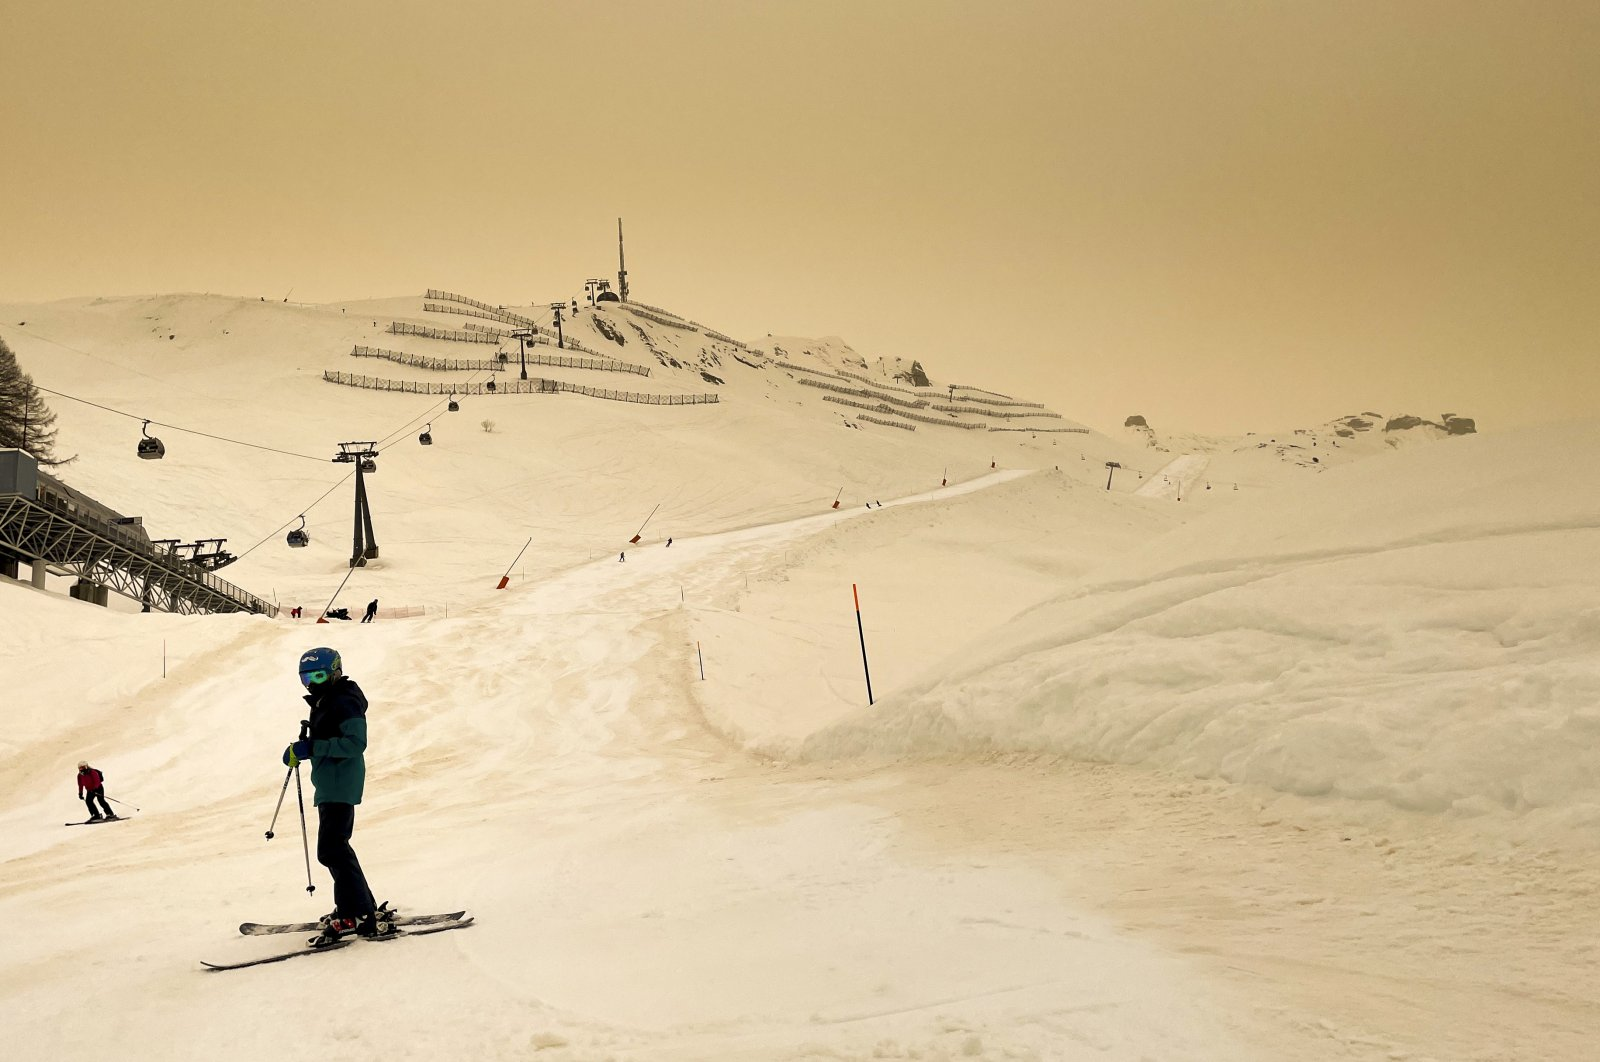 A skier wearing a protective face mask skis as Sahara sand colors the snow and sky in orange creating a special light atmosphere, during the coronavirus outbreak, in the Alpine resort of Anzere, Switzerland, Feb. 6, 2021. (AP Photo)